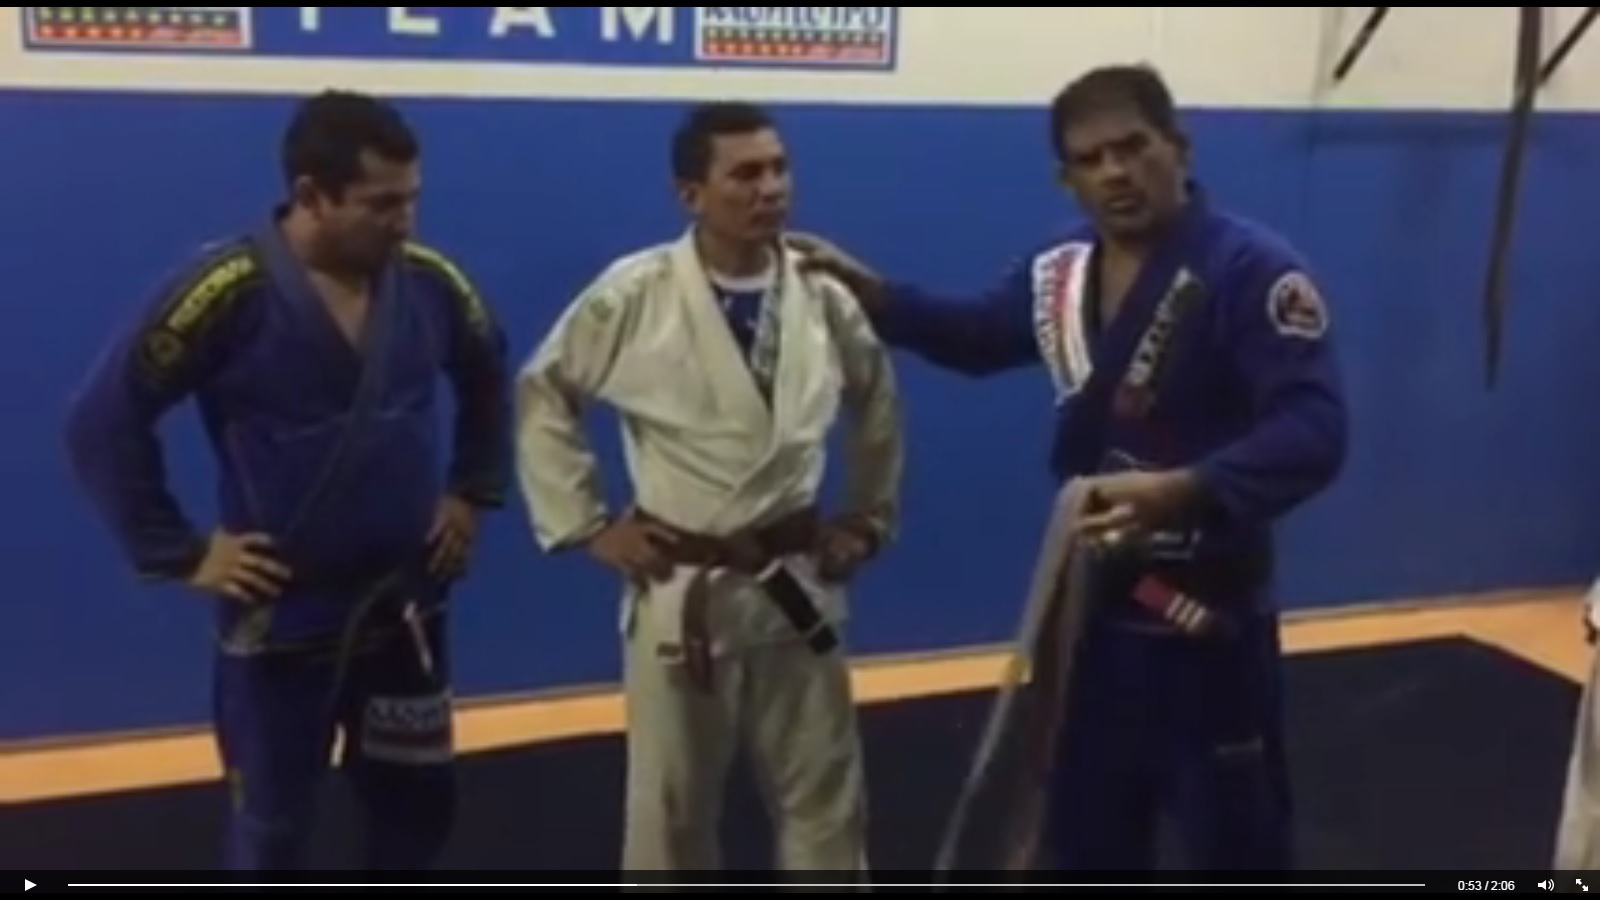 Flashback: When a BJJ Instructor Demoted His Student From Brown to Purple Belt